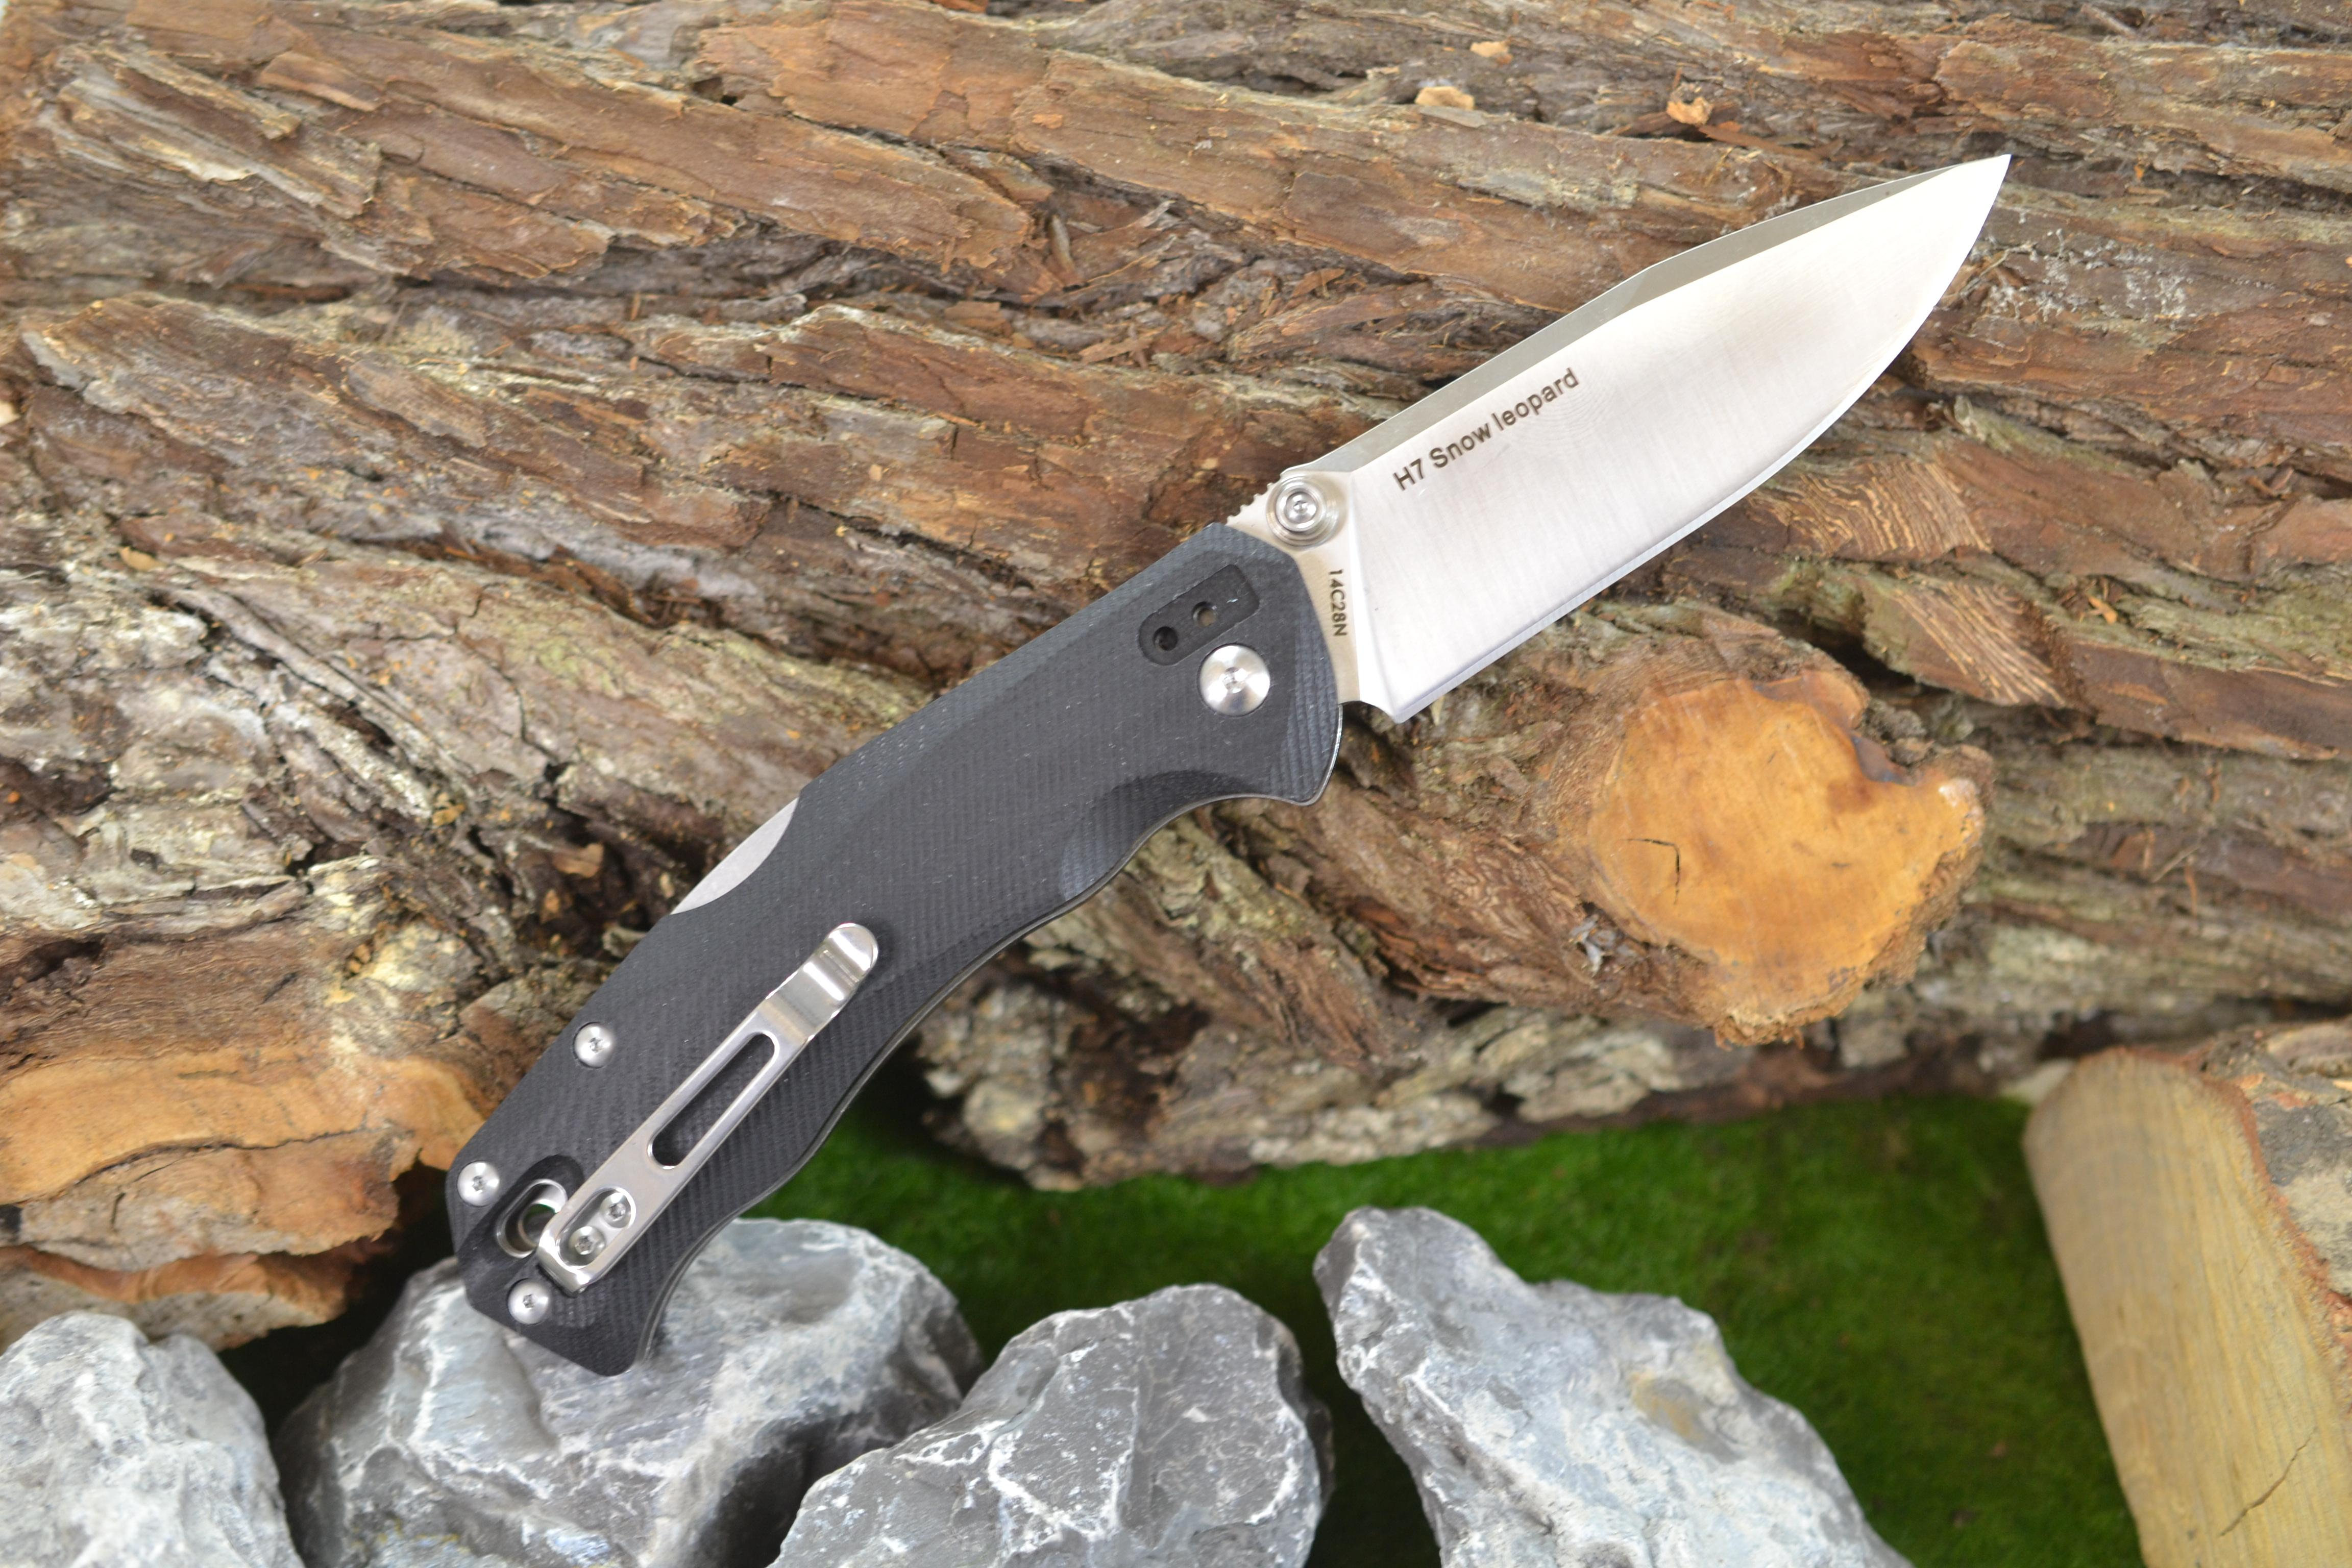 real steel h7 snow leopard einhandmesser mit clip 14c28n stahl black ebay. Black Bedroom Furniture Sets. Home Design Ideas